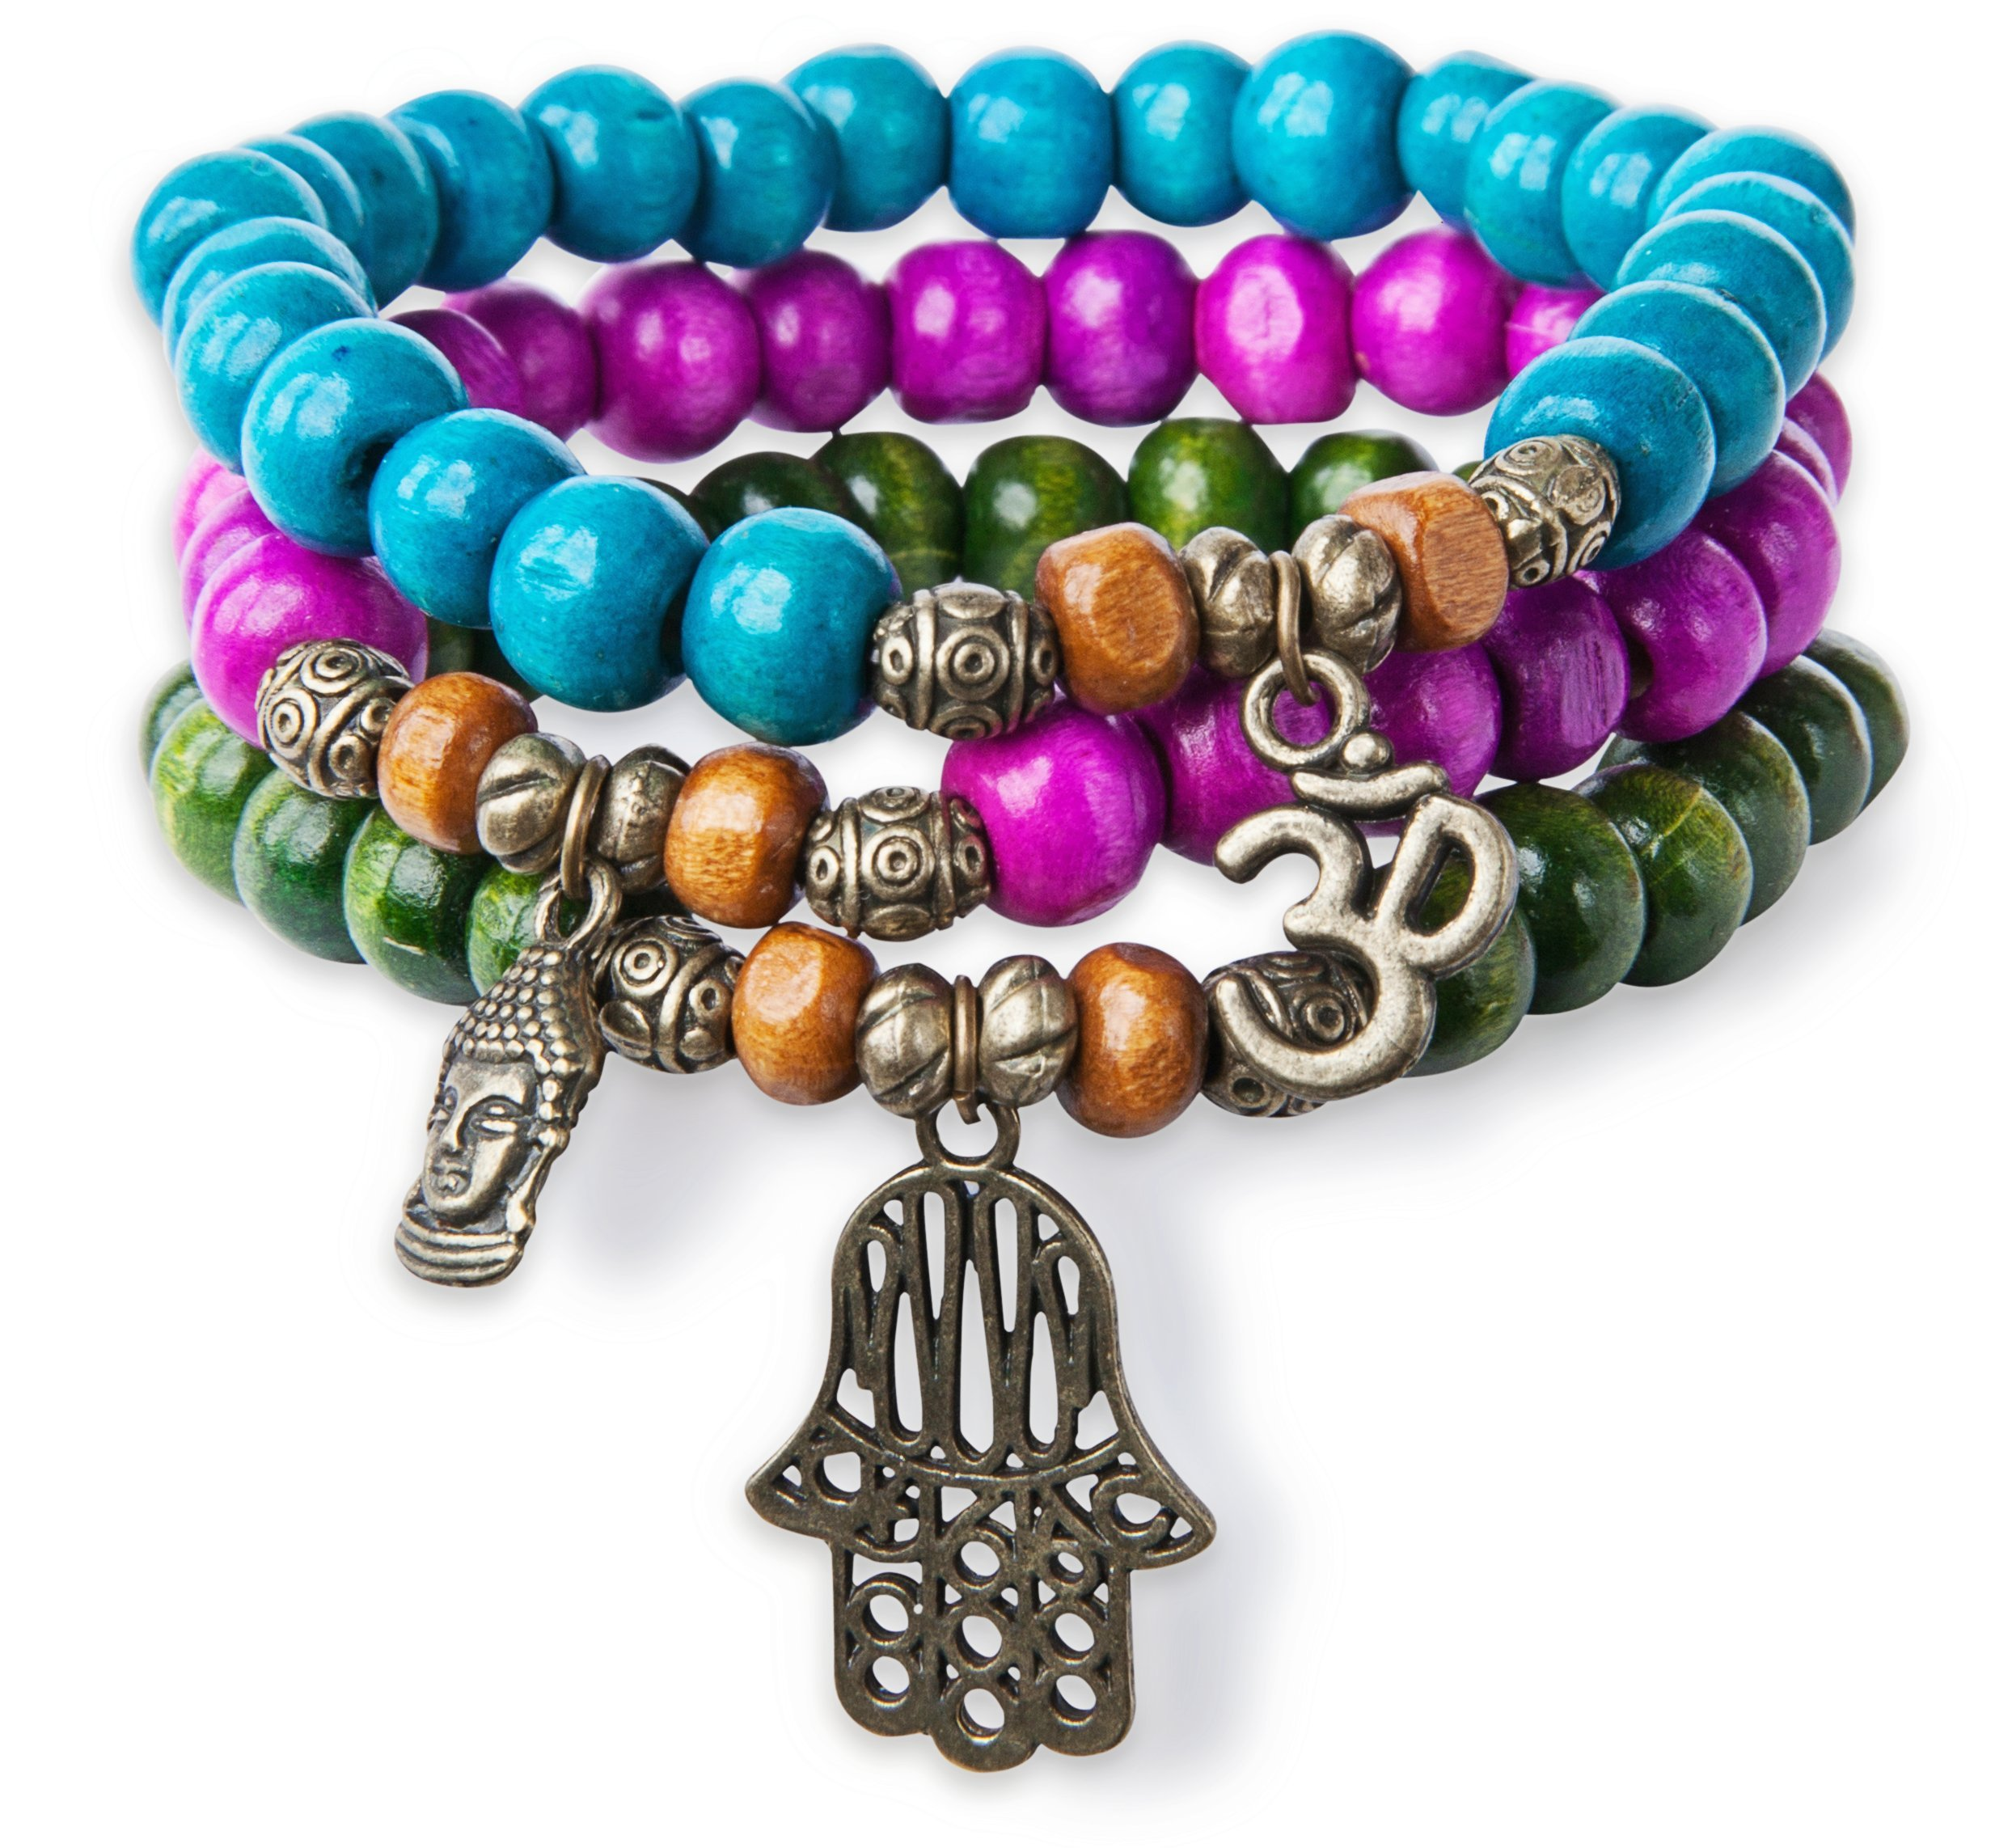 3 Stack Stretch Bracelets, Colorful Wood with Hamsa Buddha Om Charm Yoga - SPUNKYsoul Collection